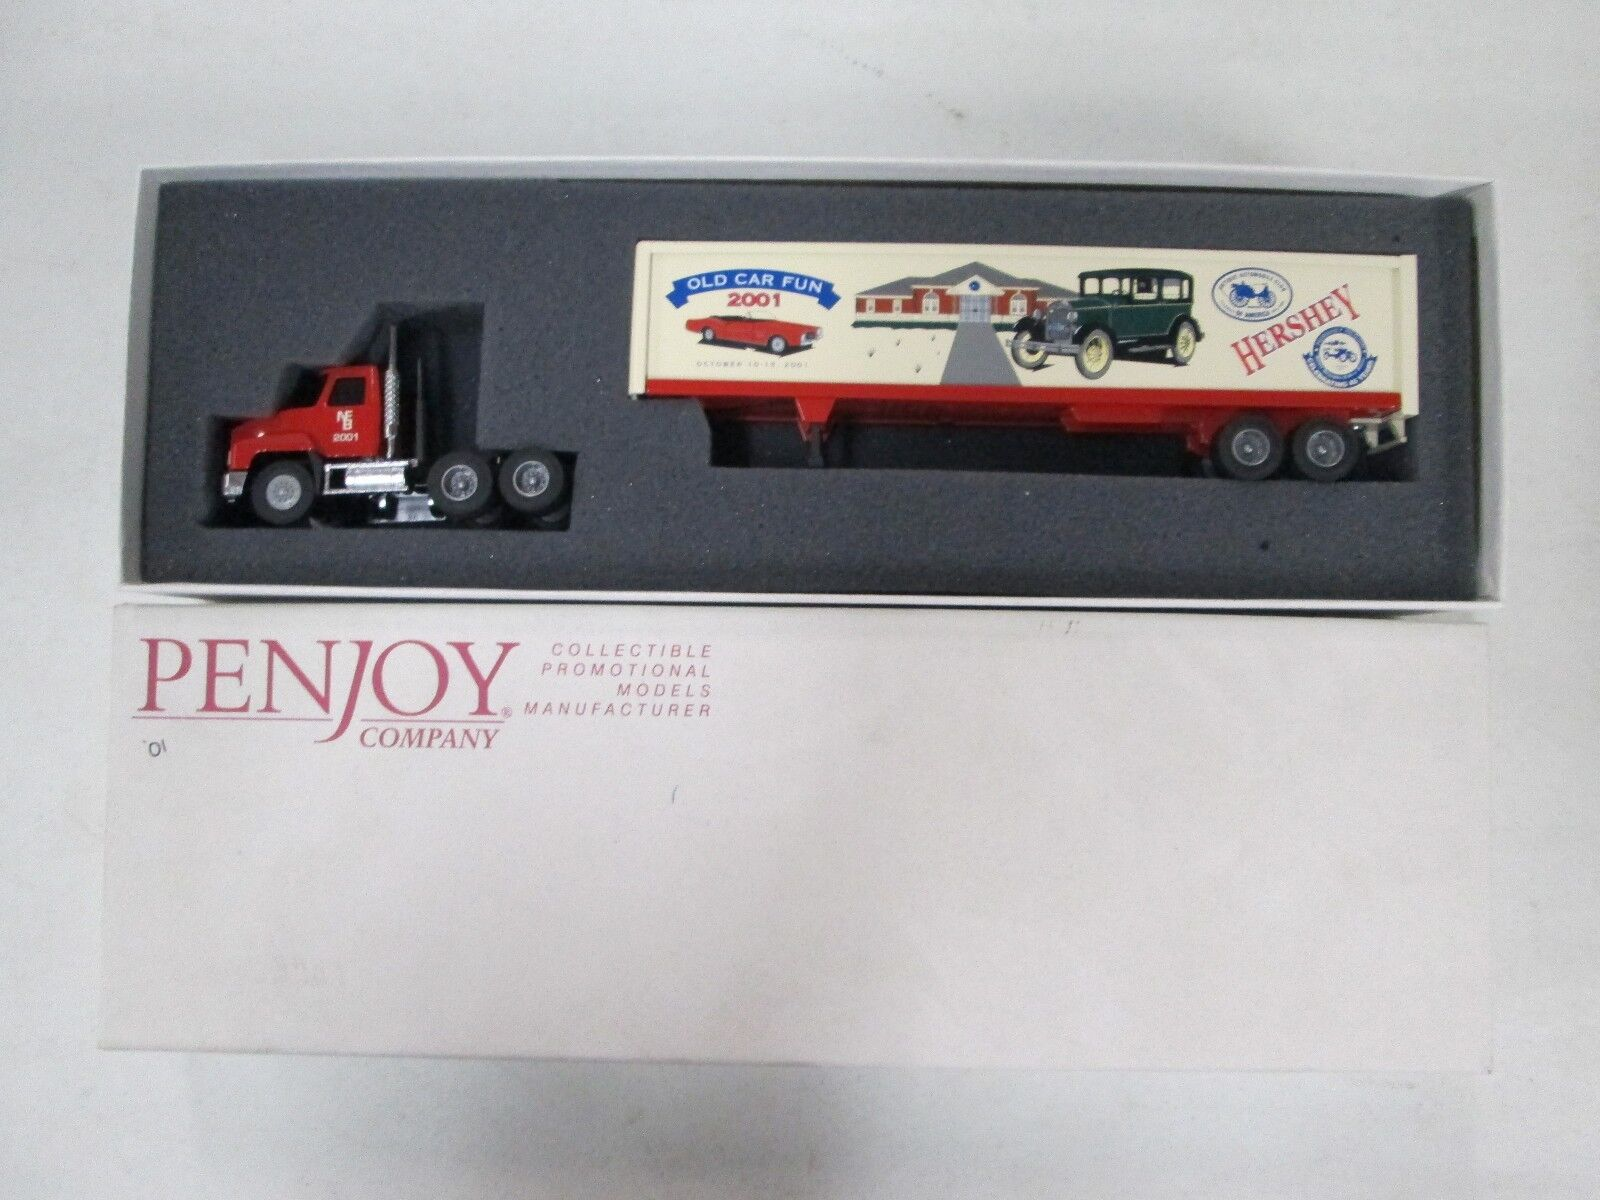 Penjoy Company 2001 Hershey Auto Museum 1 64 scale scale scale 2b0696